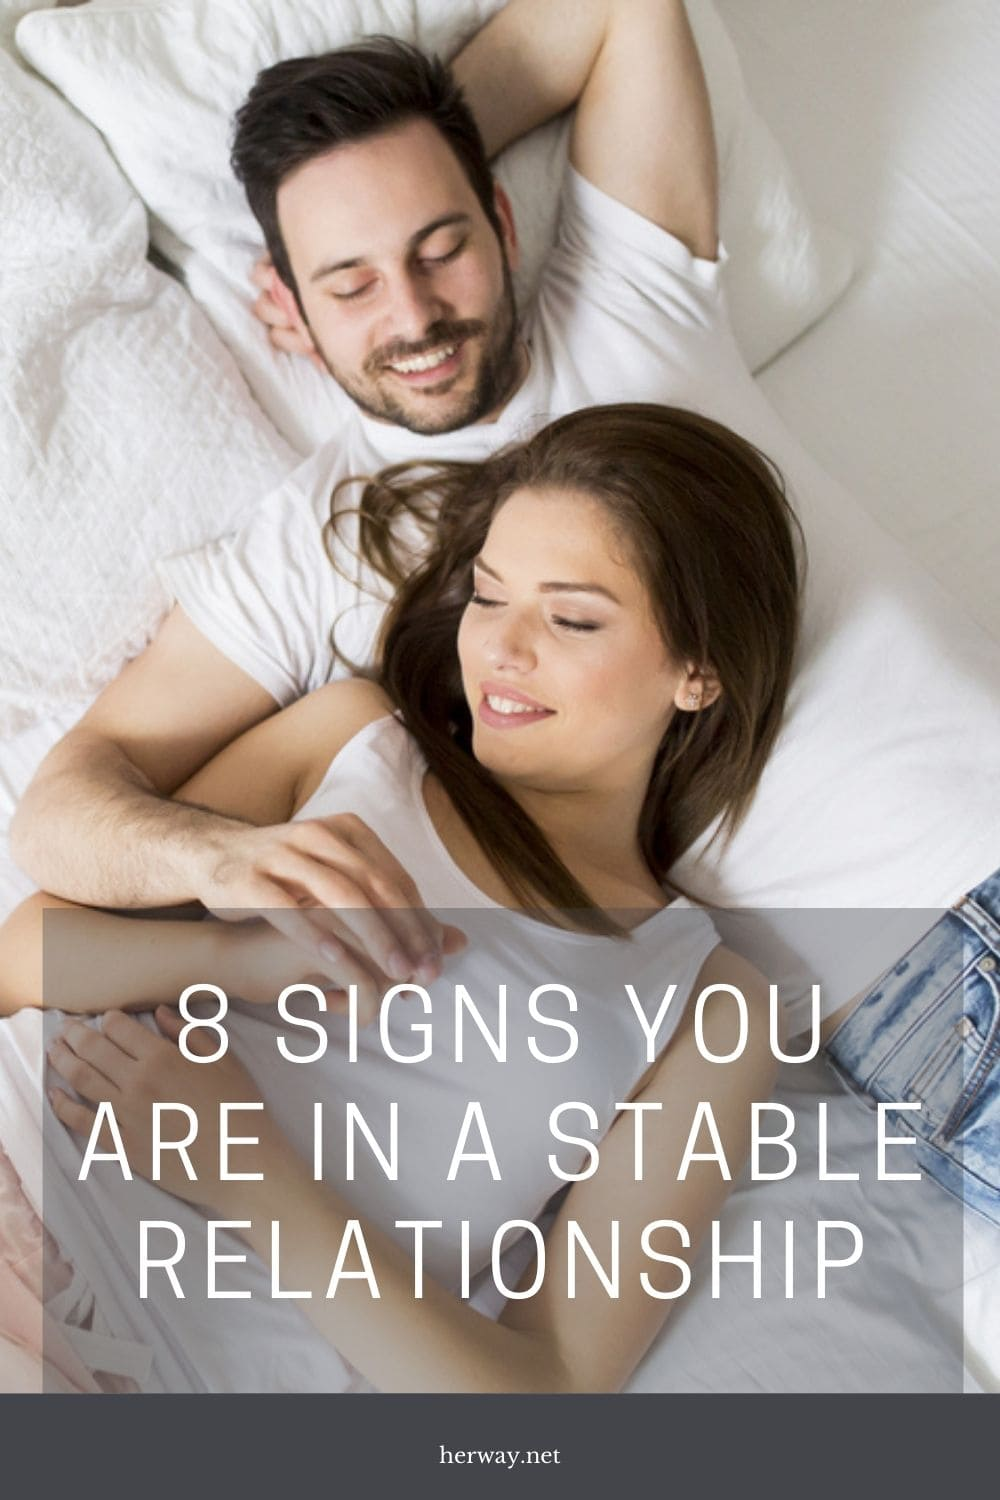 8 Signs You Are in a Stable Relationship